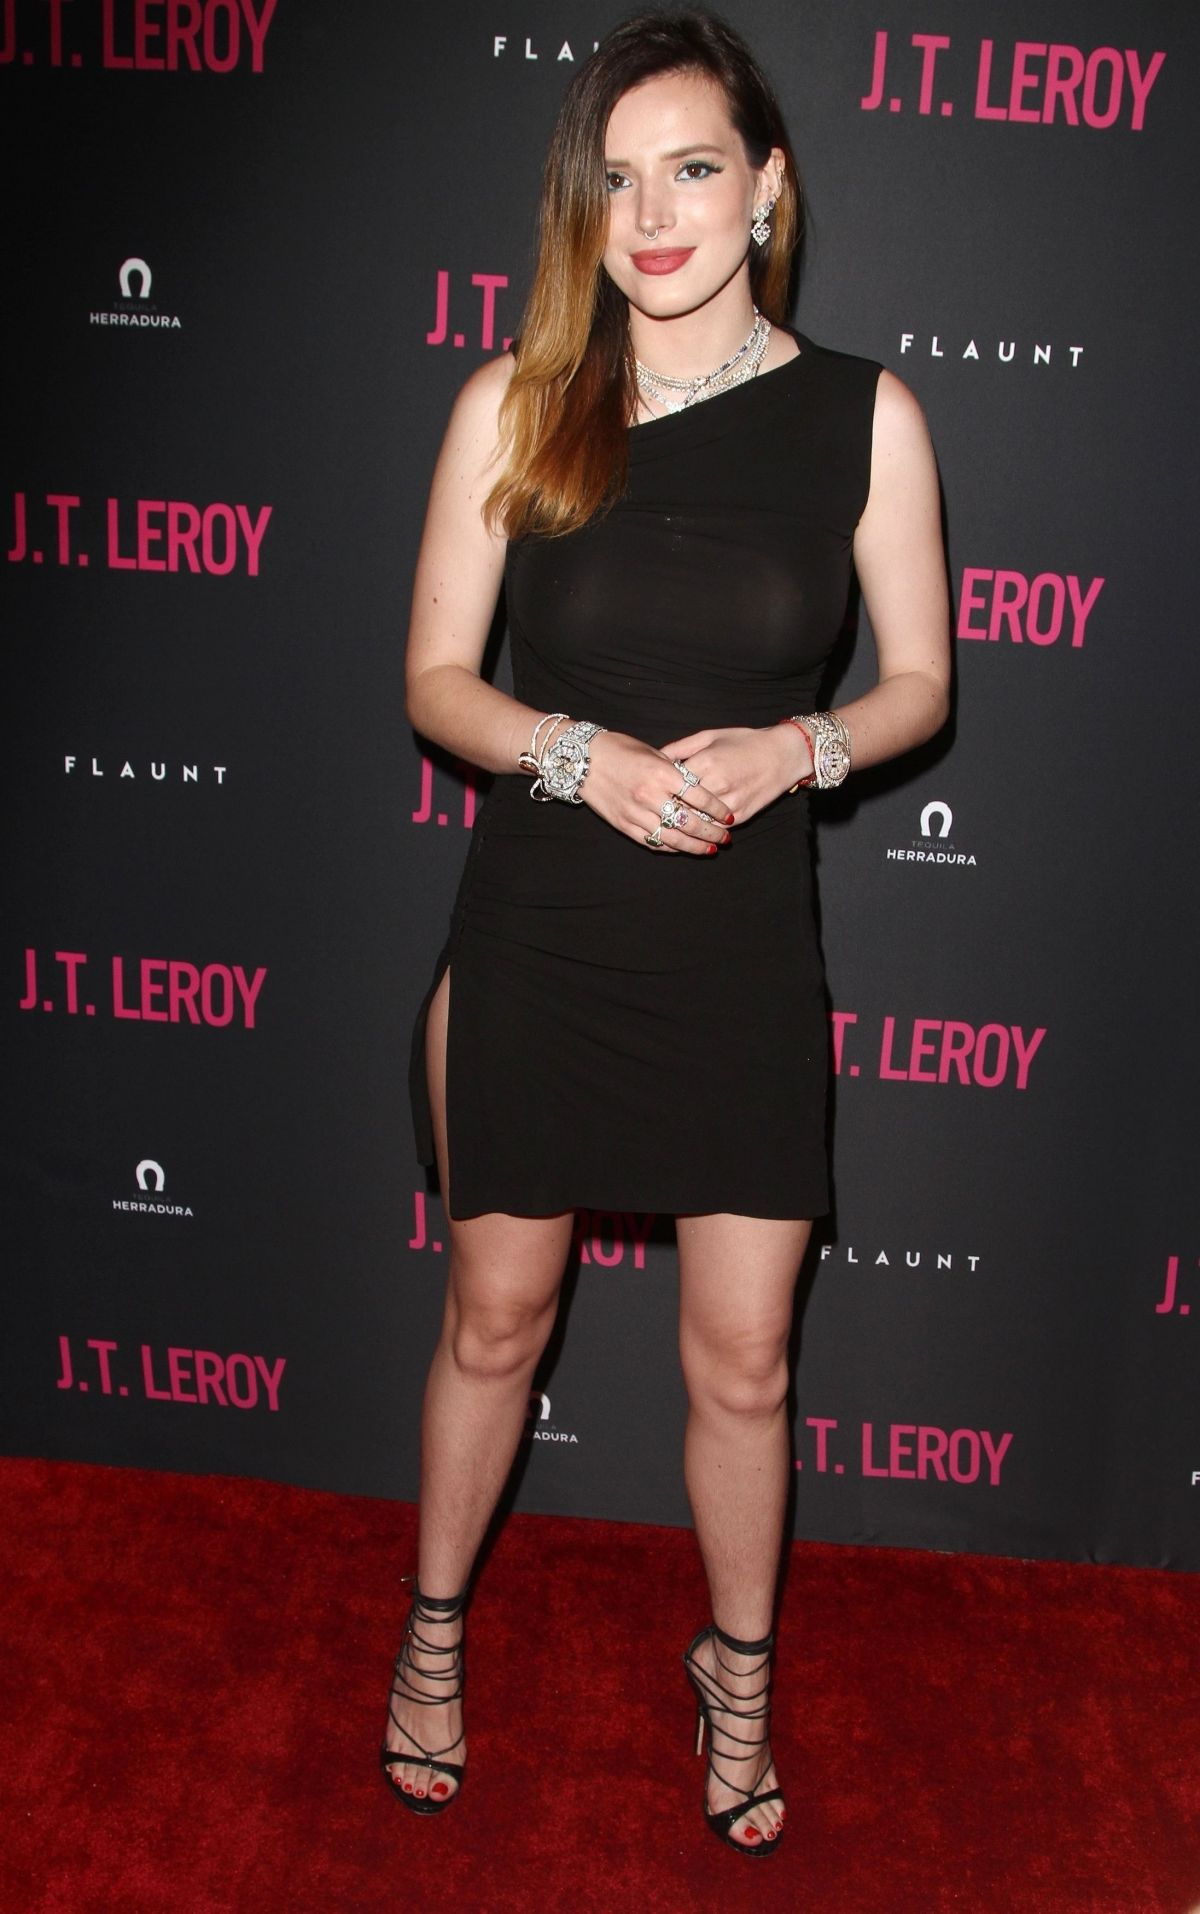 bella thorne at j t  leroy premiere in hollywood 04  24